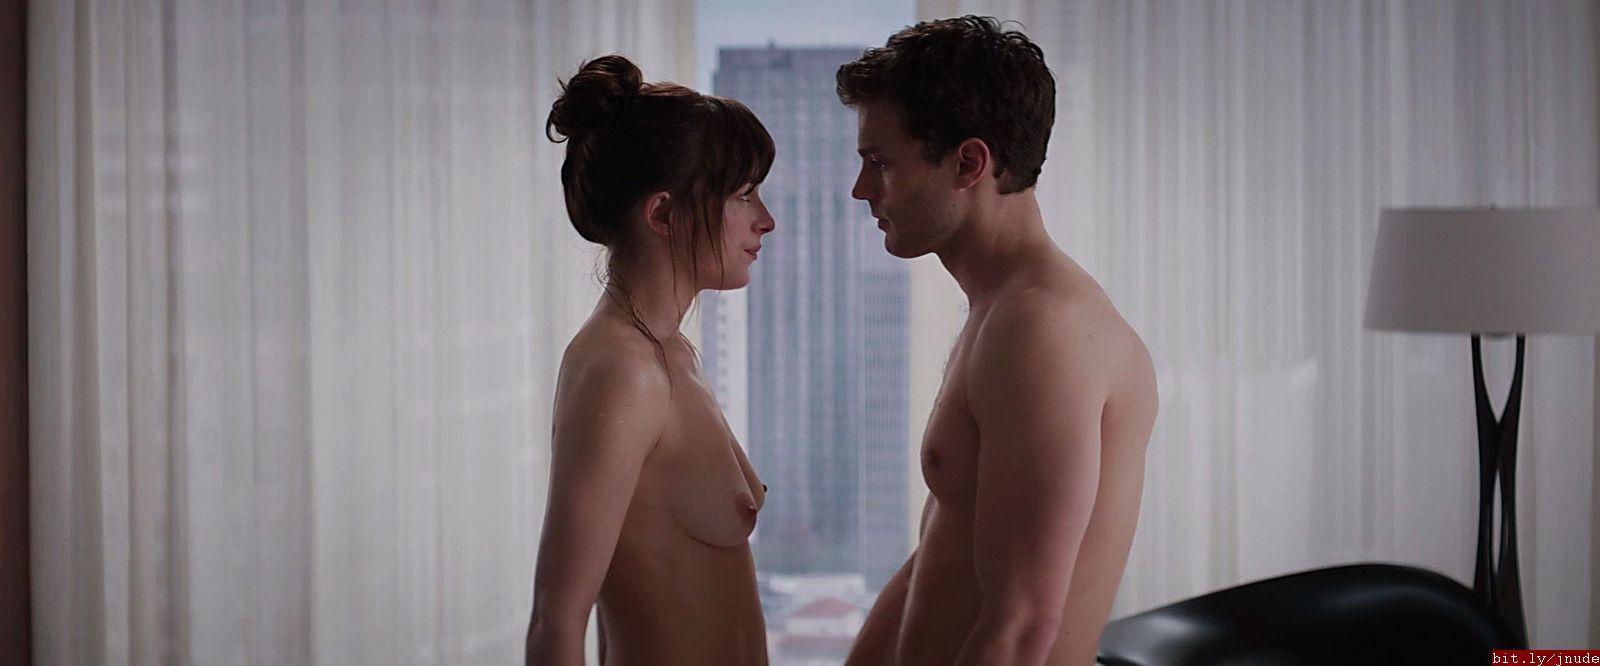 Dakota johnson fifty shades nude